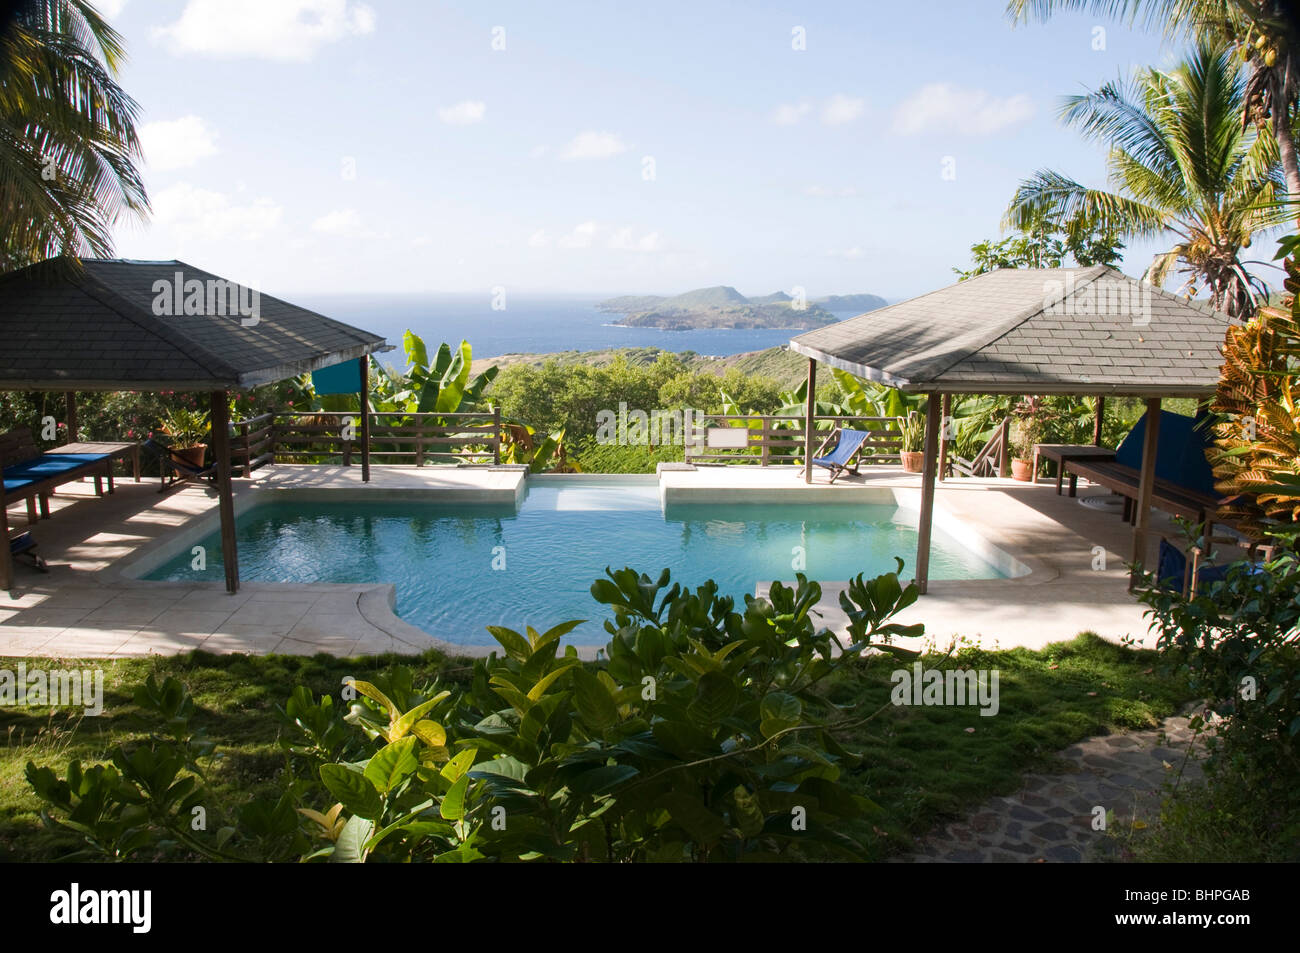 Luxury Caribbean Bequia Island Villa Hotel Pool With View